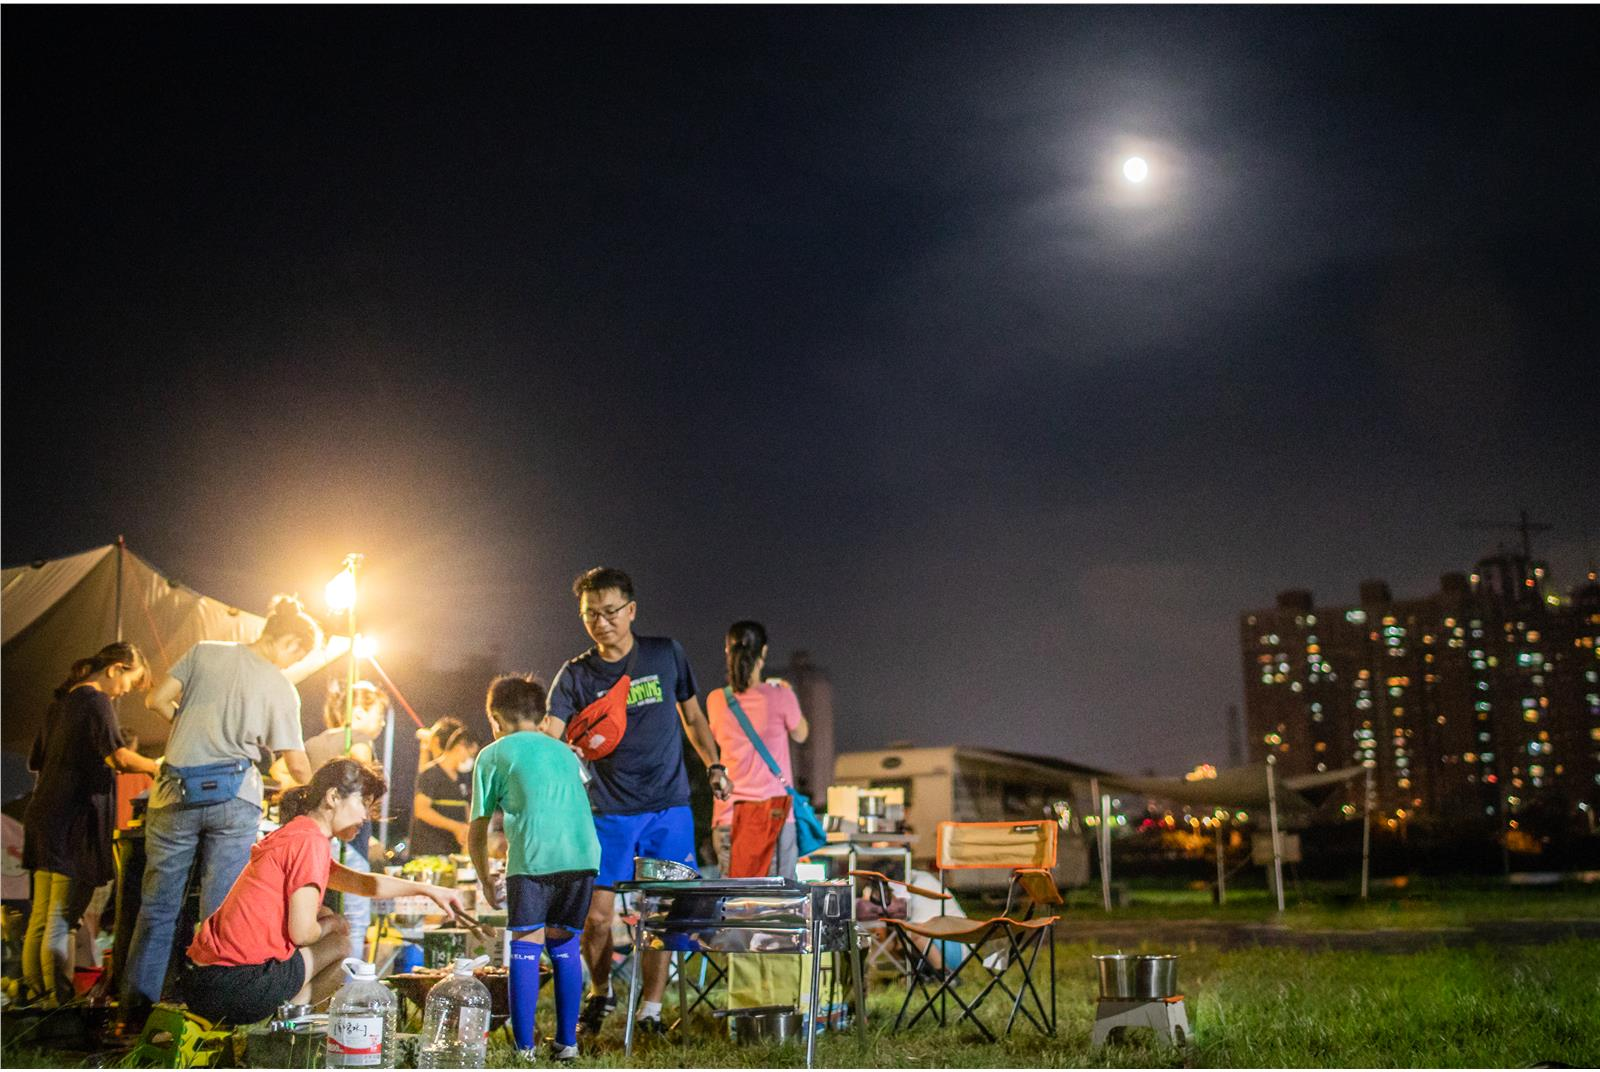 Autumn BBQ in Taiwan. Photo from Youth Daily News on September 24, 2018